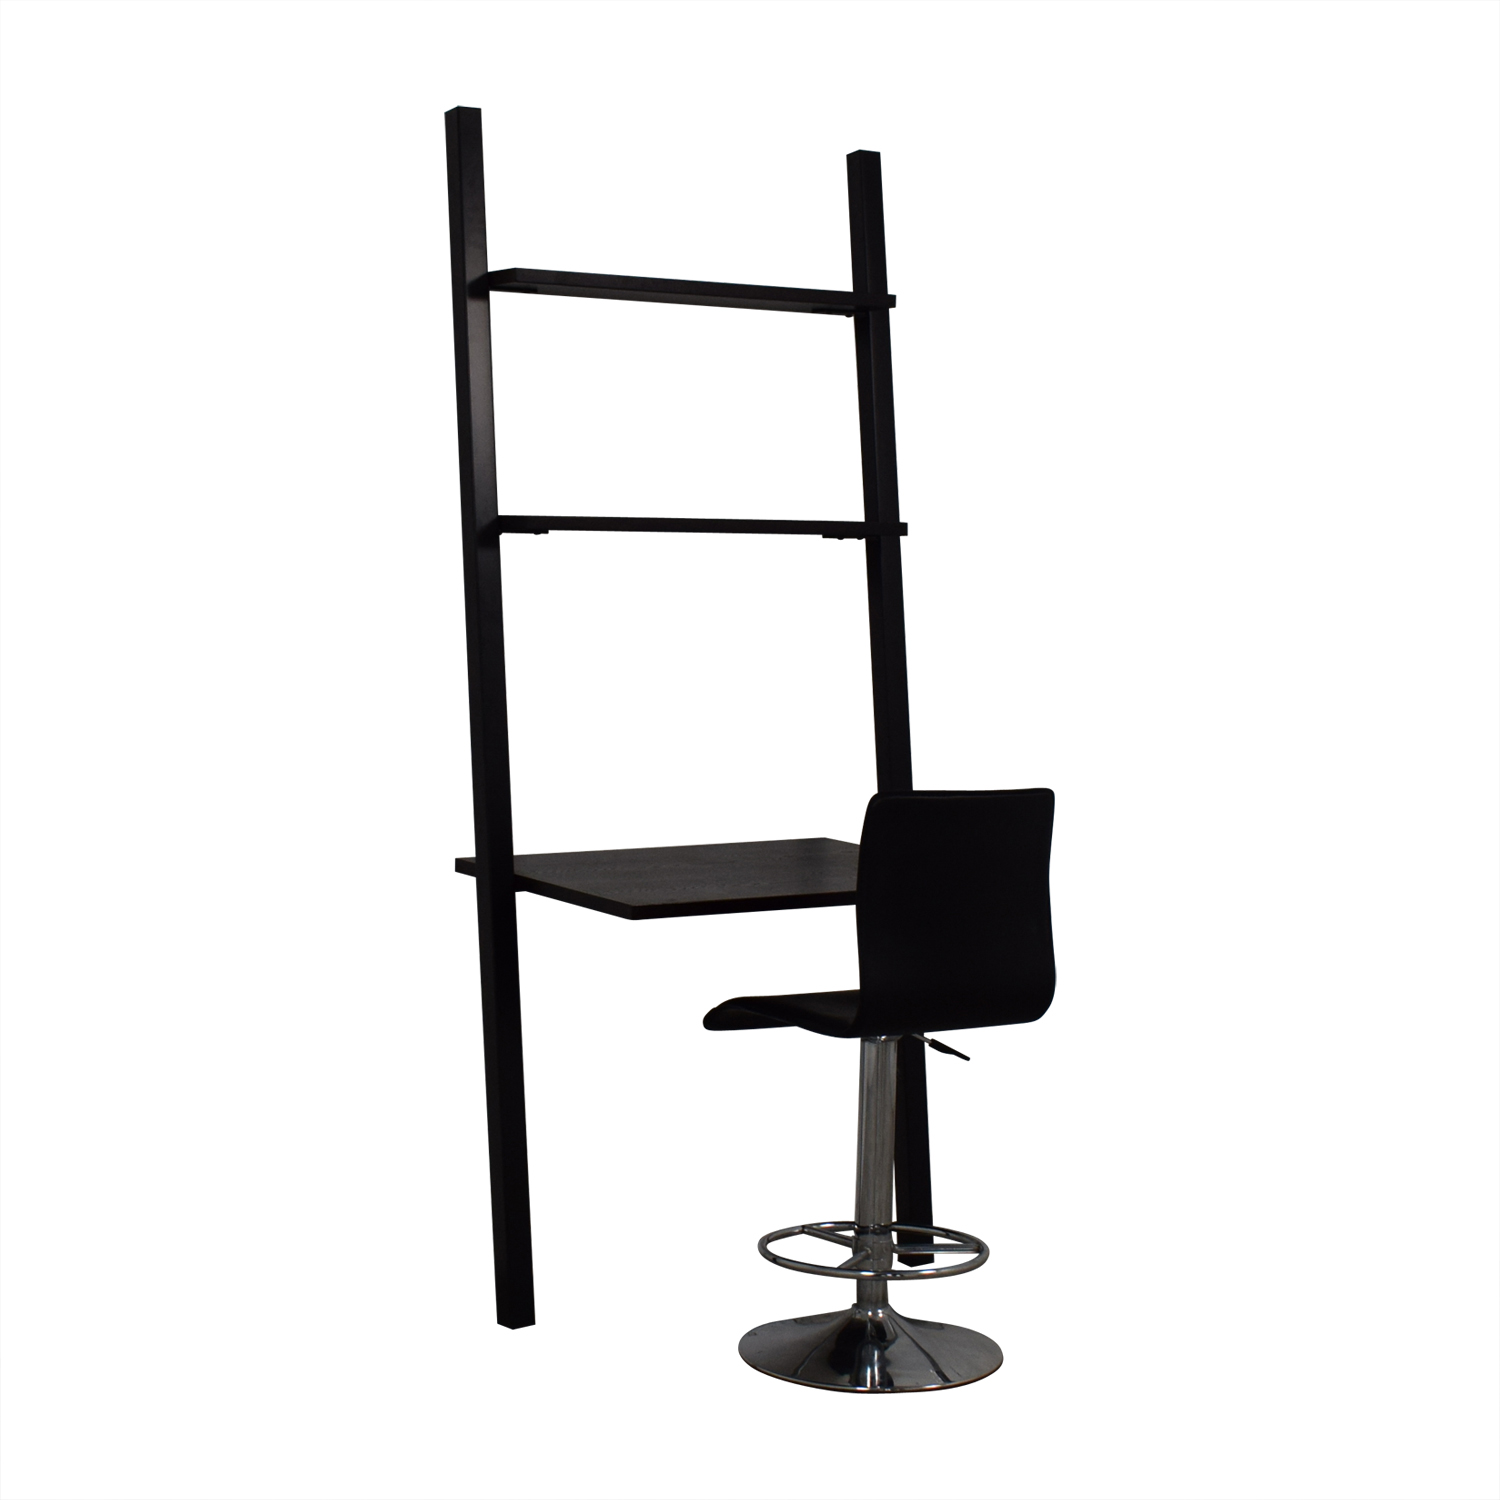 The Door Store Ladder Shelf Desk with Modern Black Chair sale